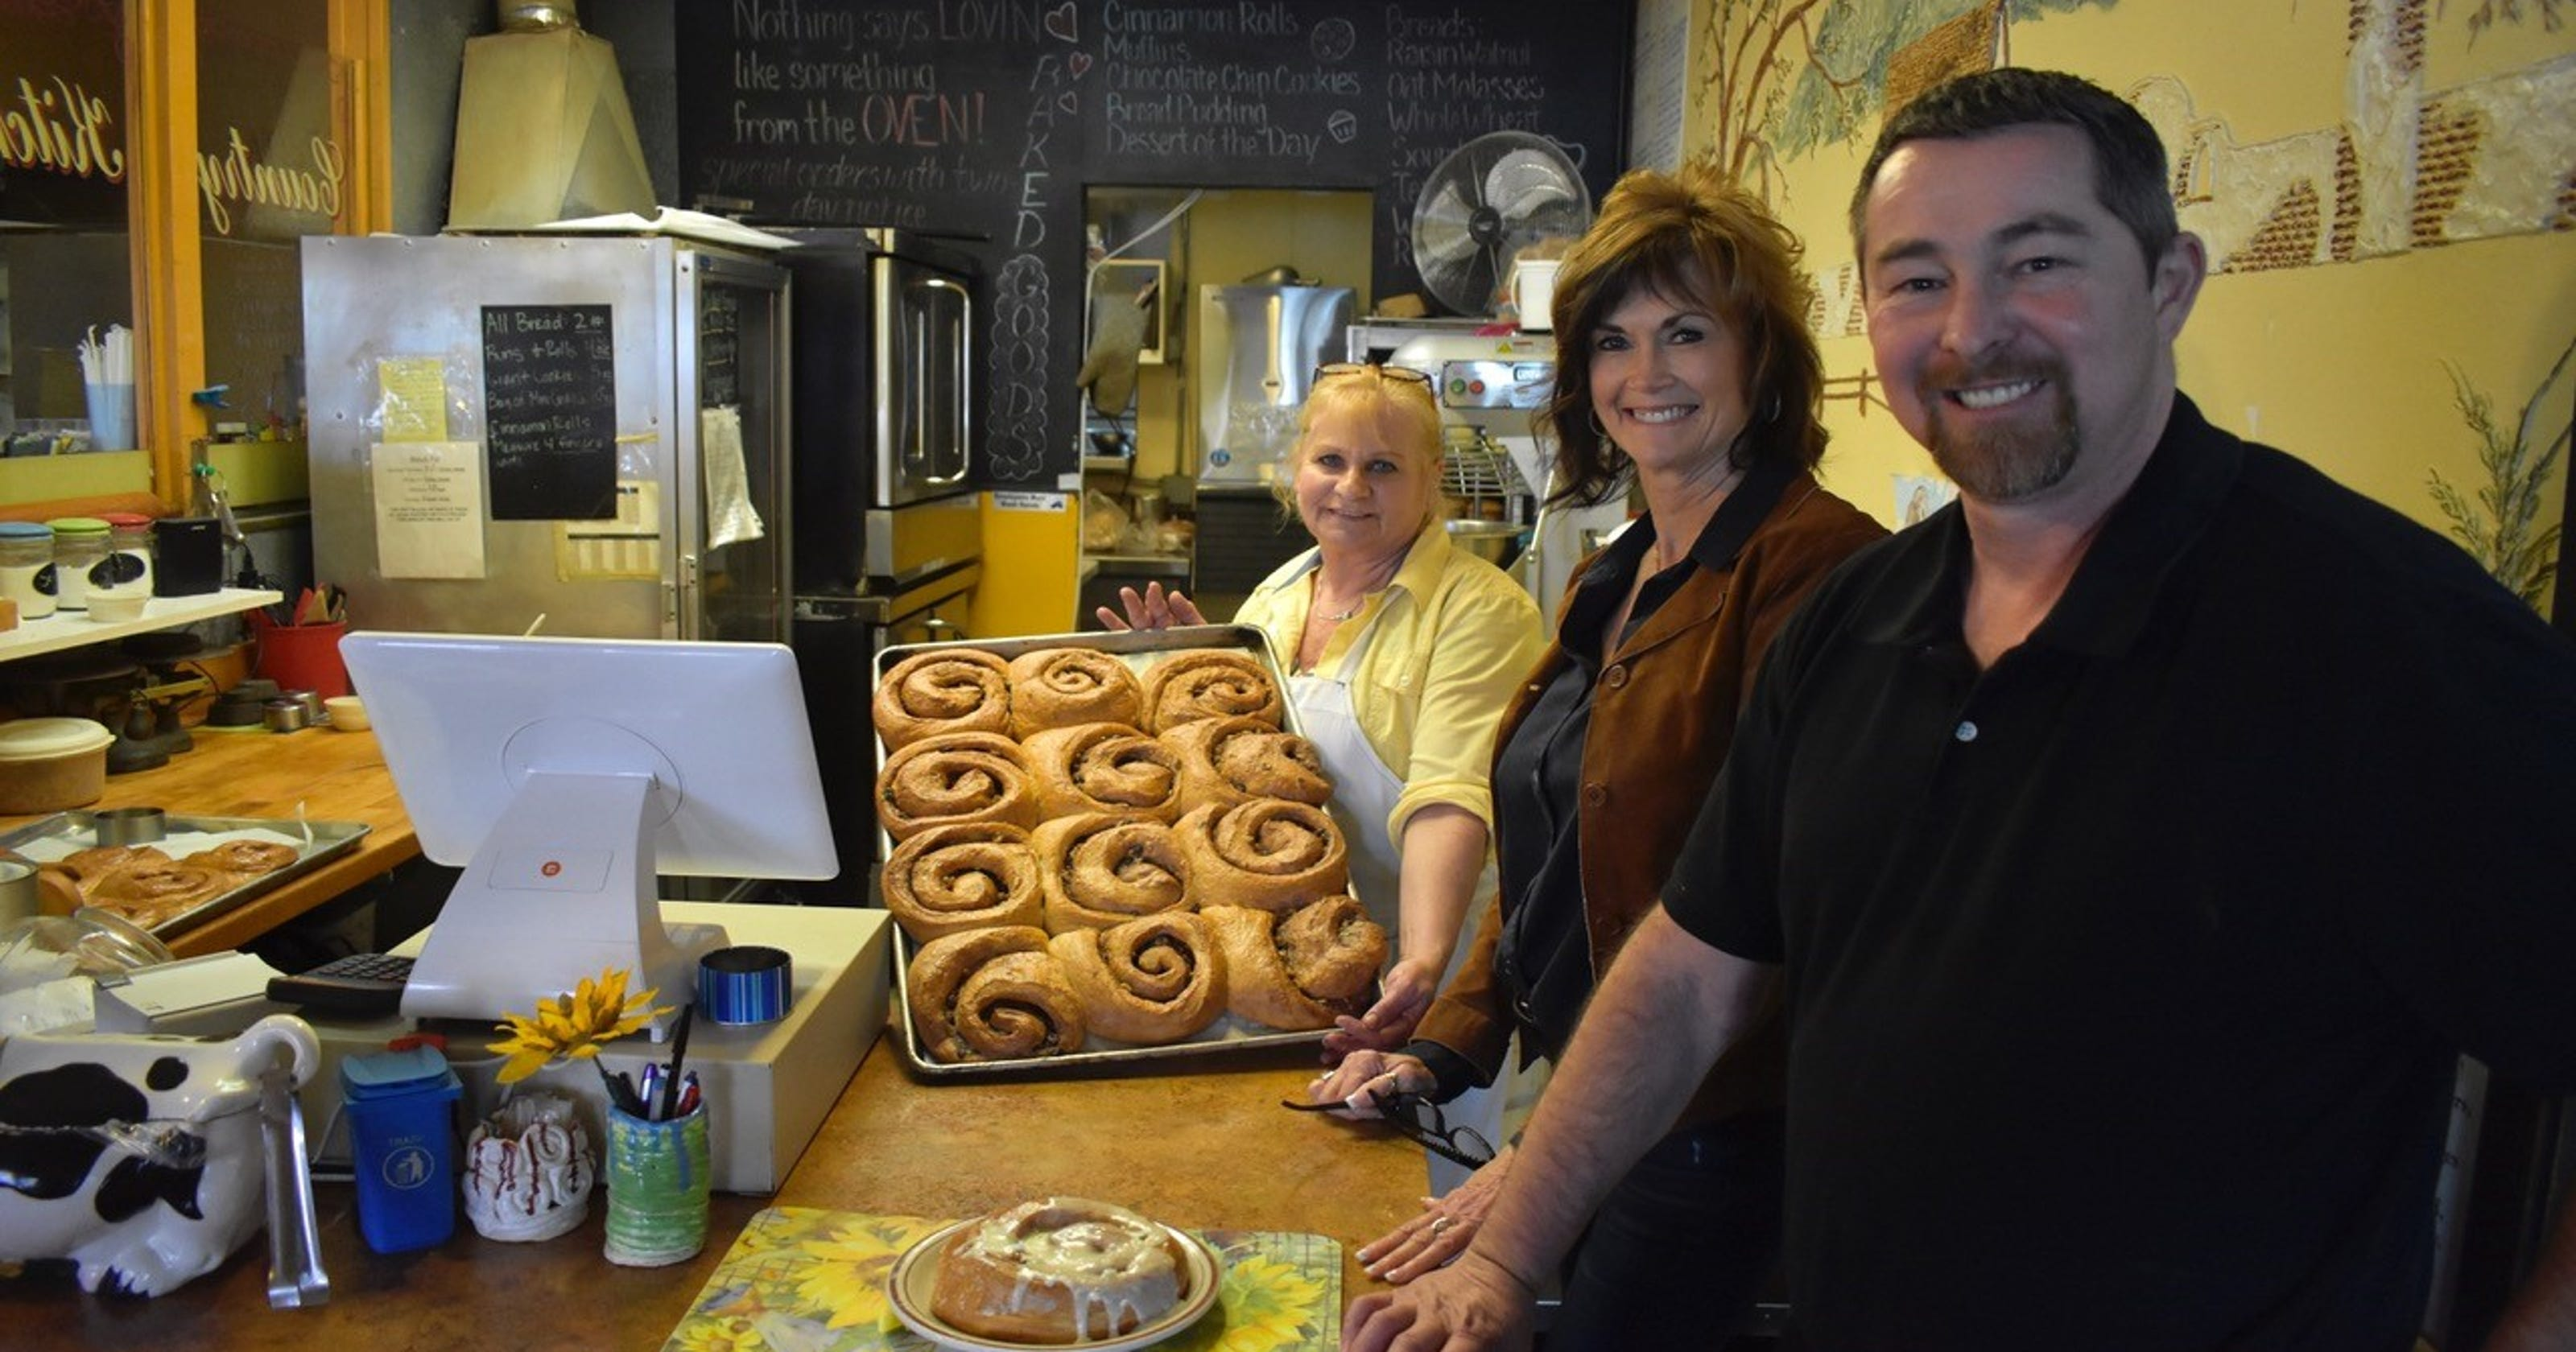 Big appetite? Country Kitchen in Redding has you covered